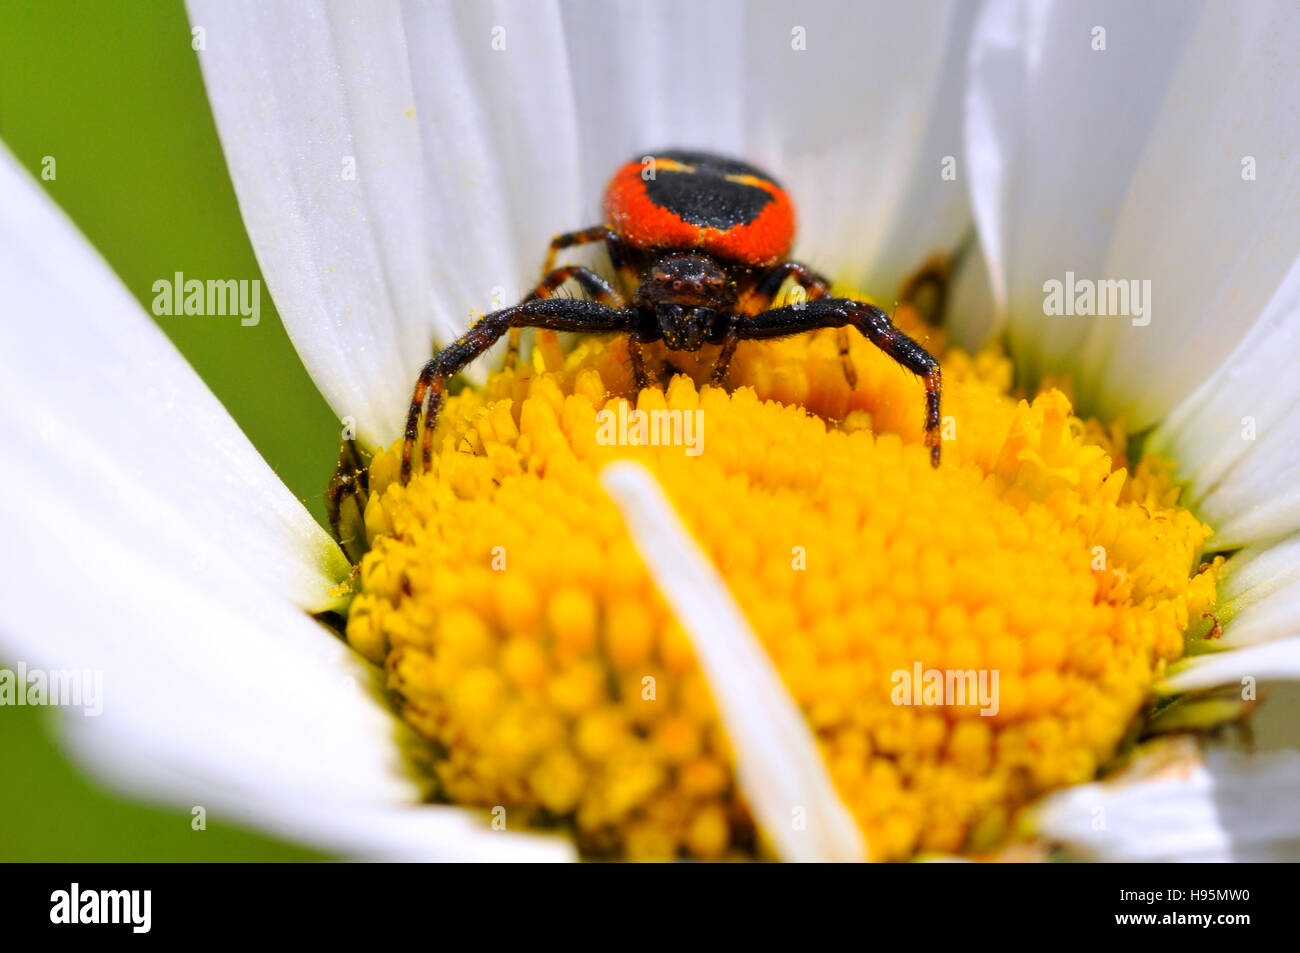 Macro of front black and red crab spider on the yellow heart of a daisy flower - Stock Image